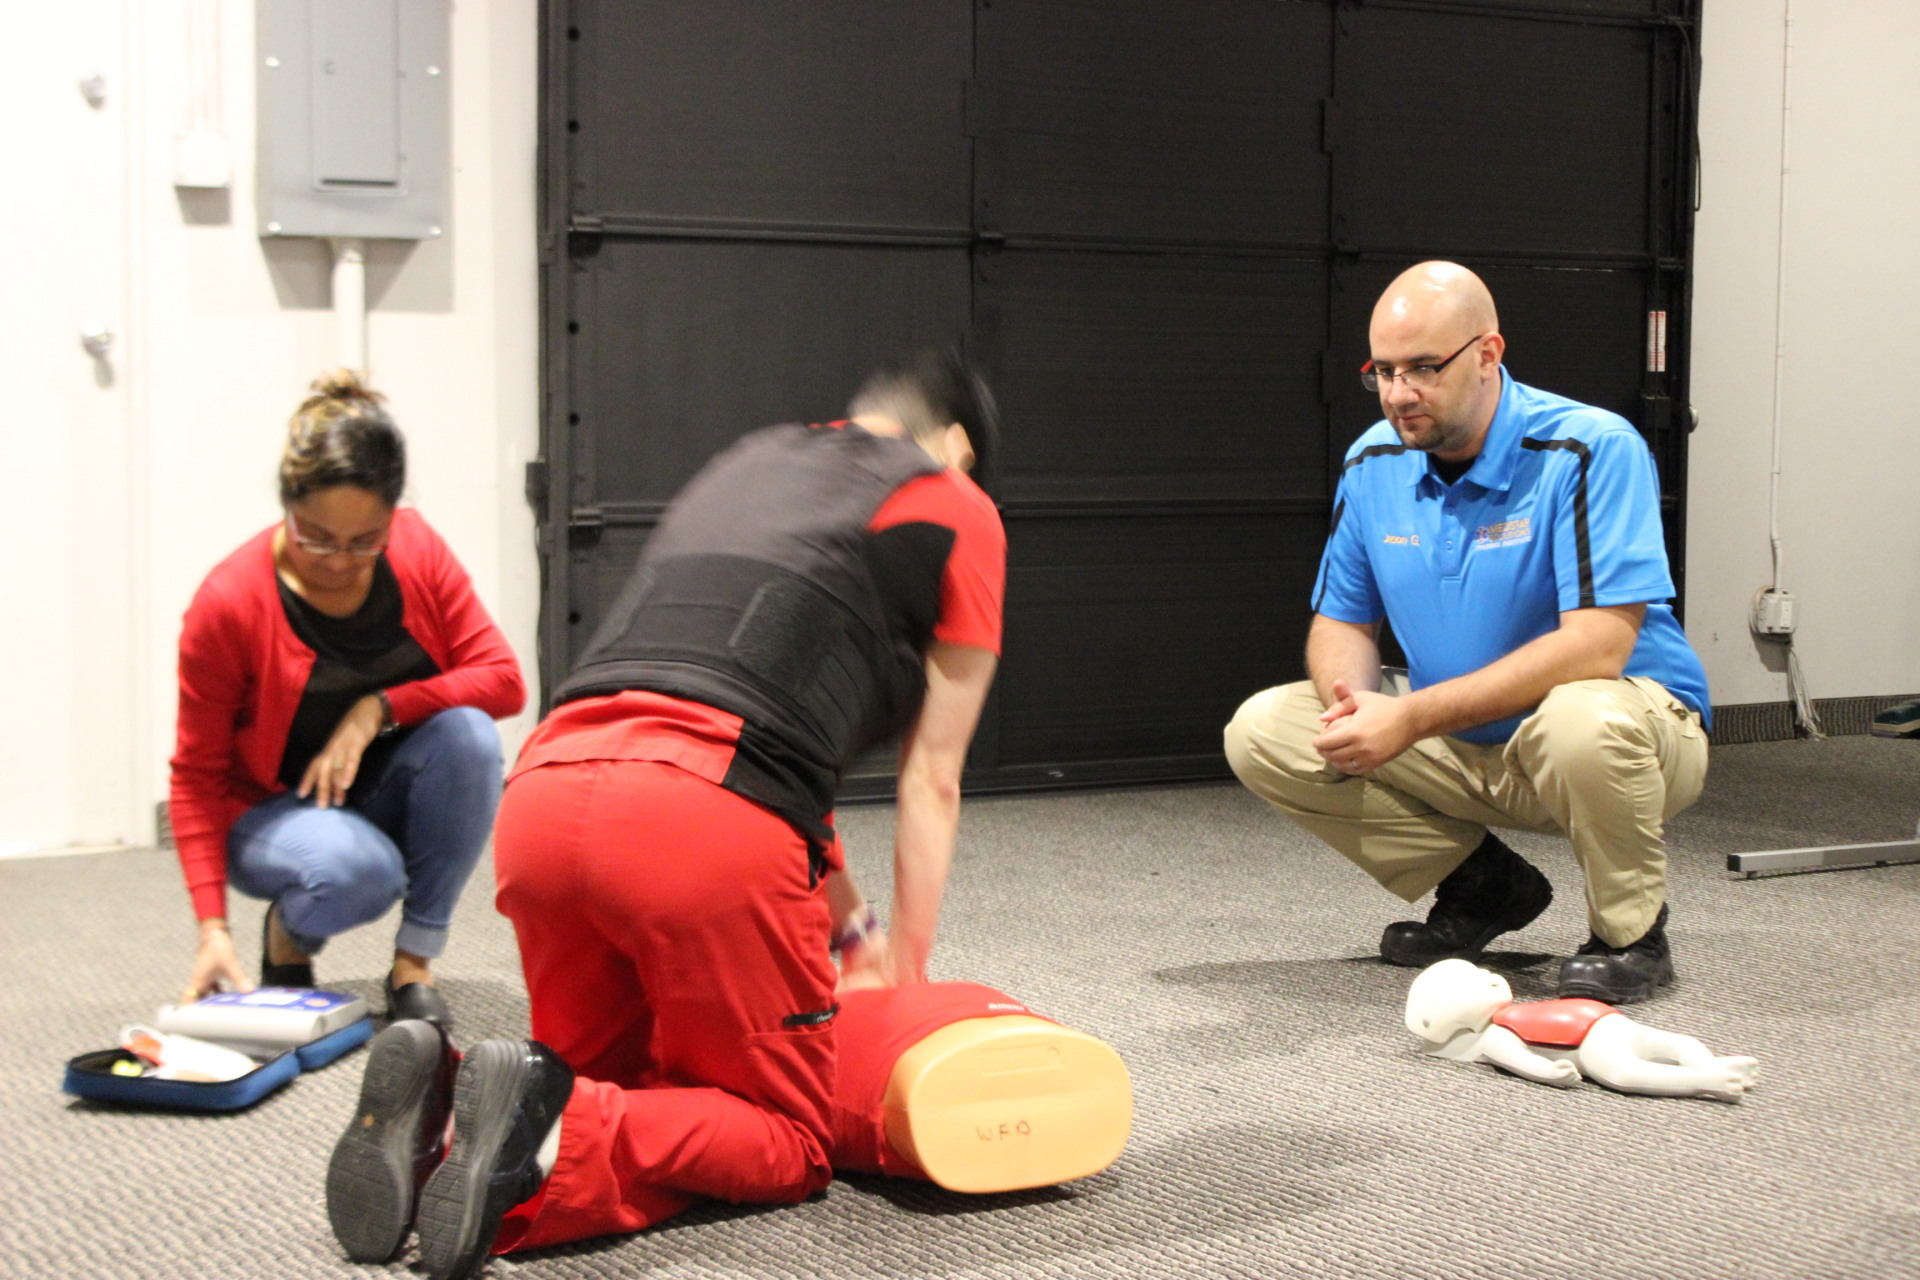 Refreshing skill for Professional CPR